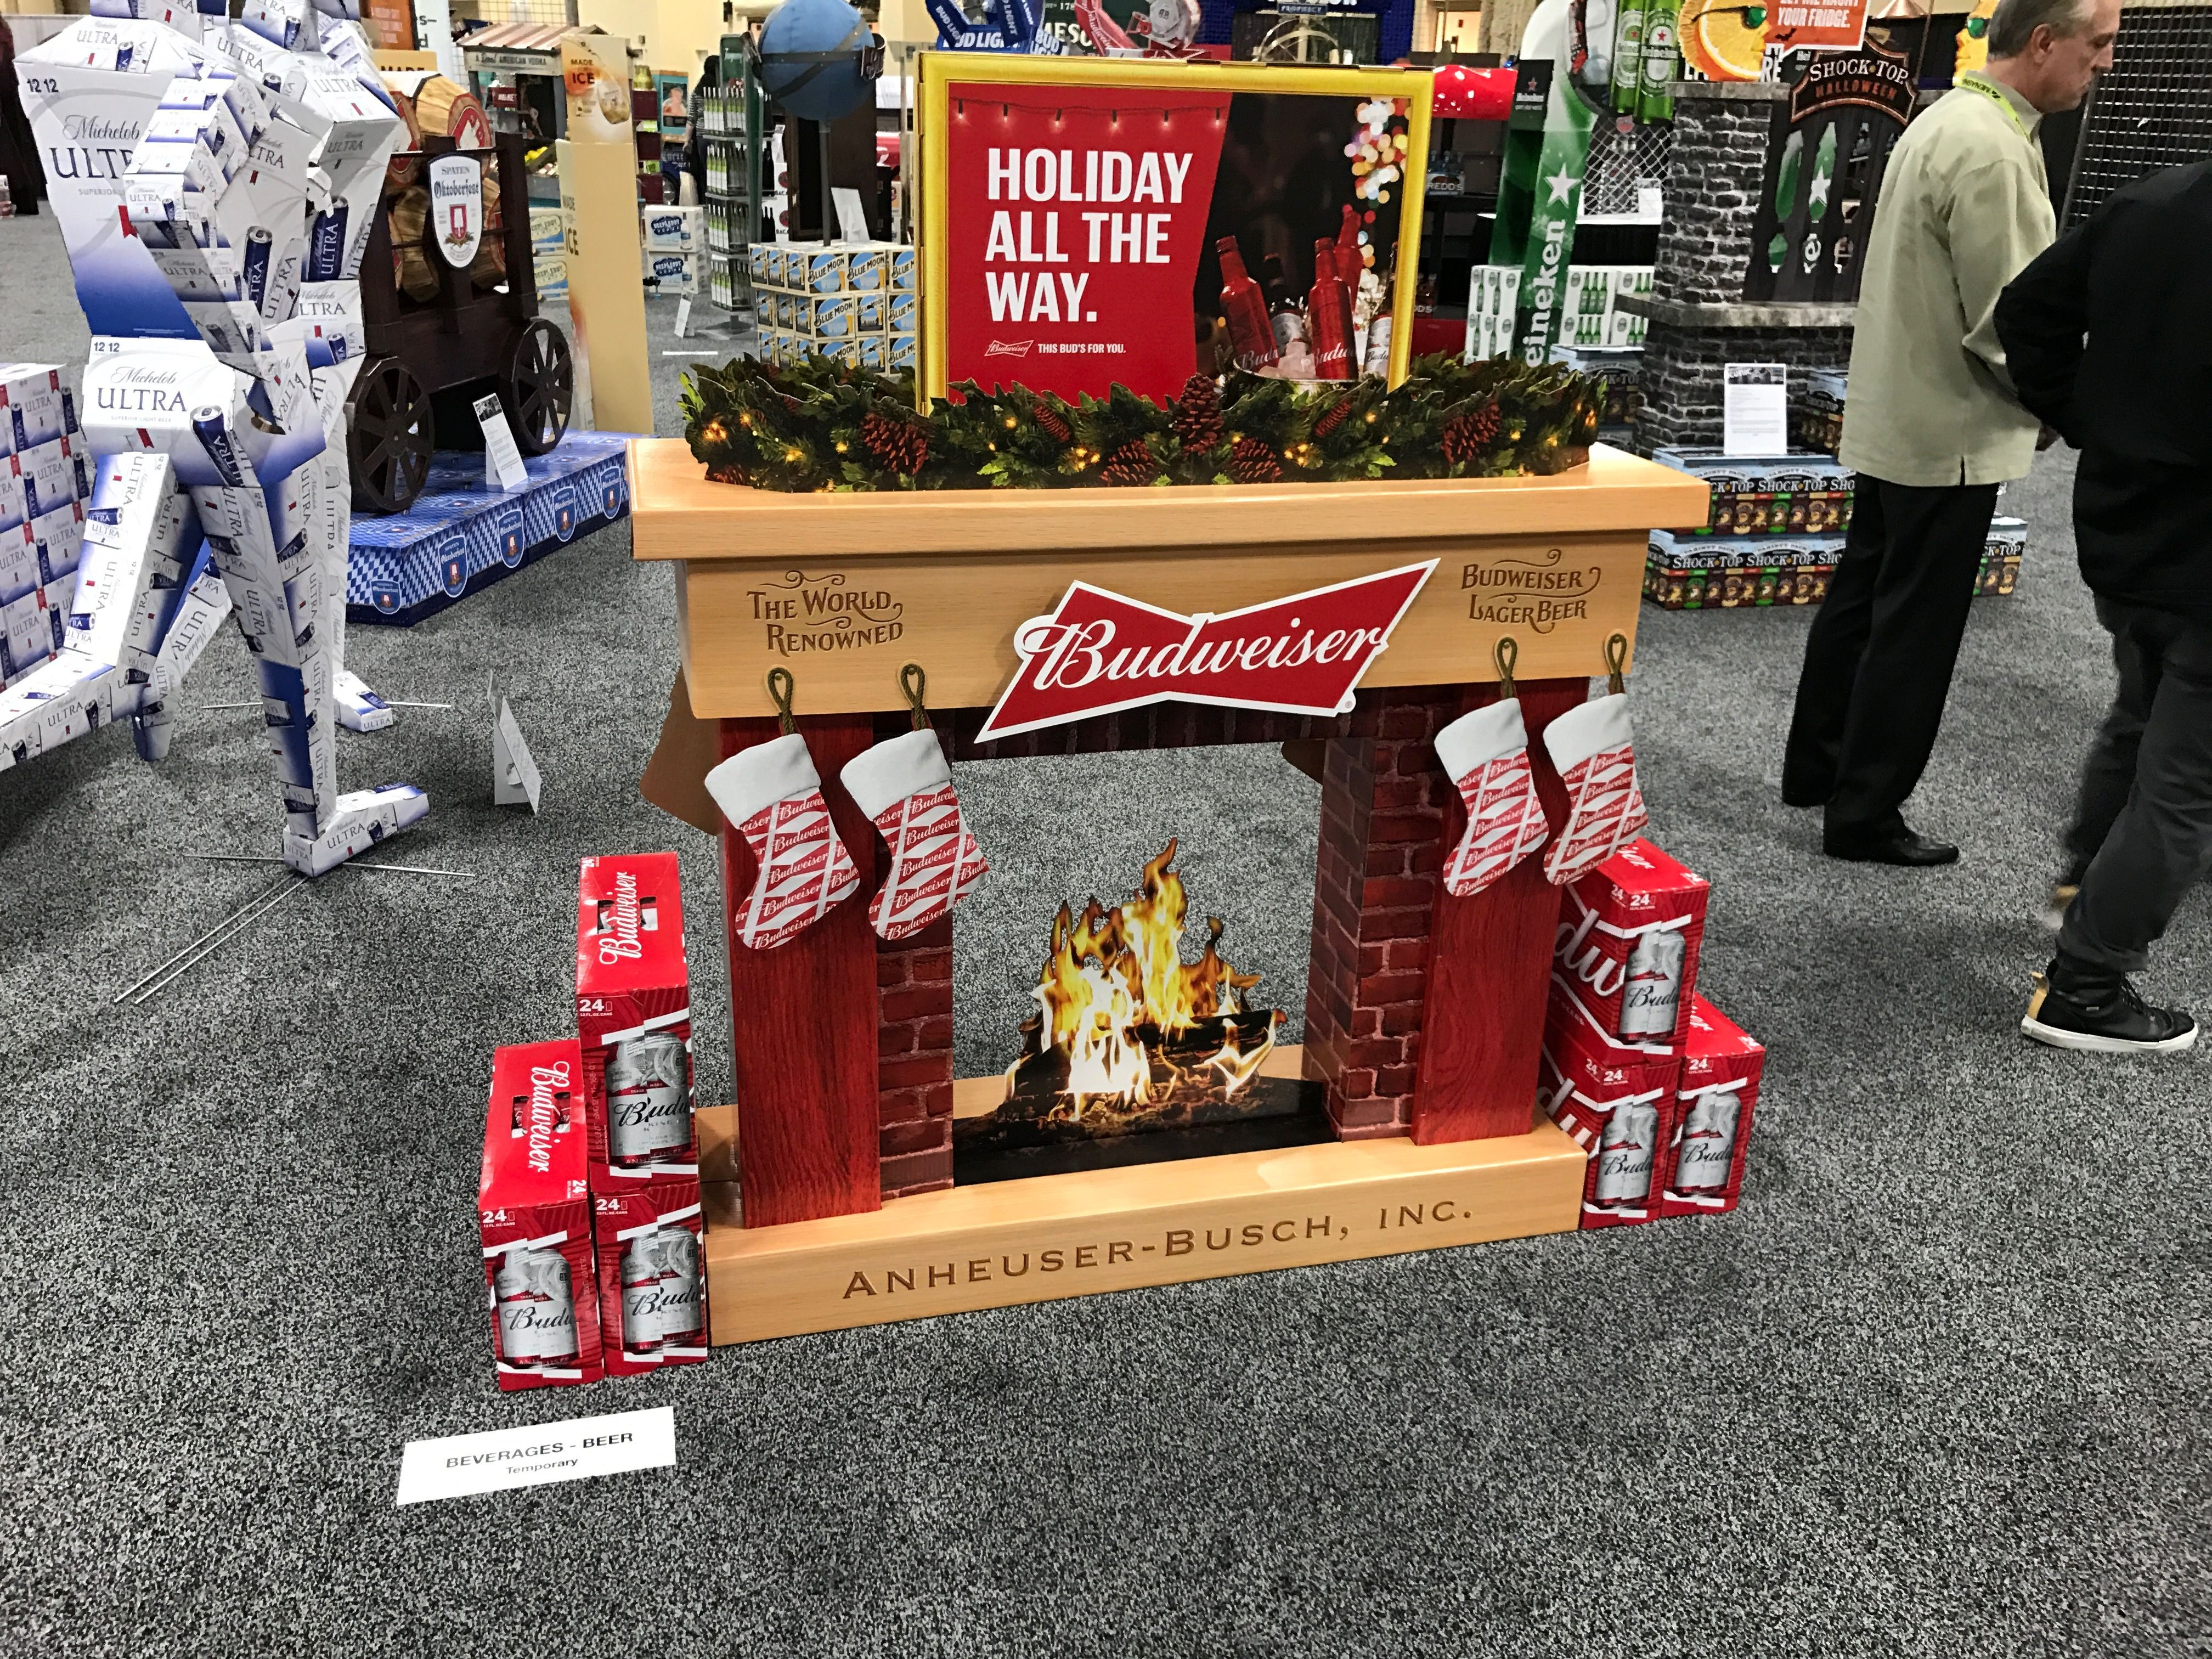 Superb Budweiser uHoliday All The Way u Free Standing Unit Looking to get noticed with